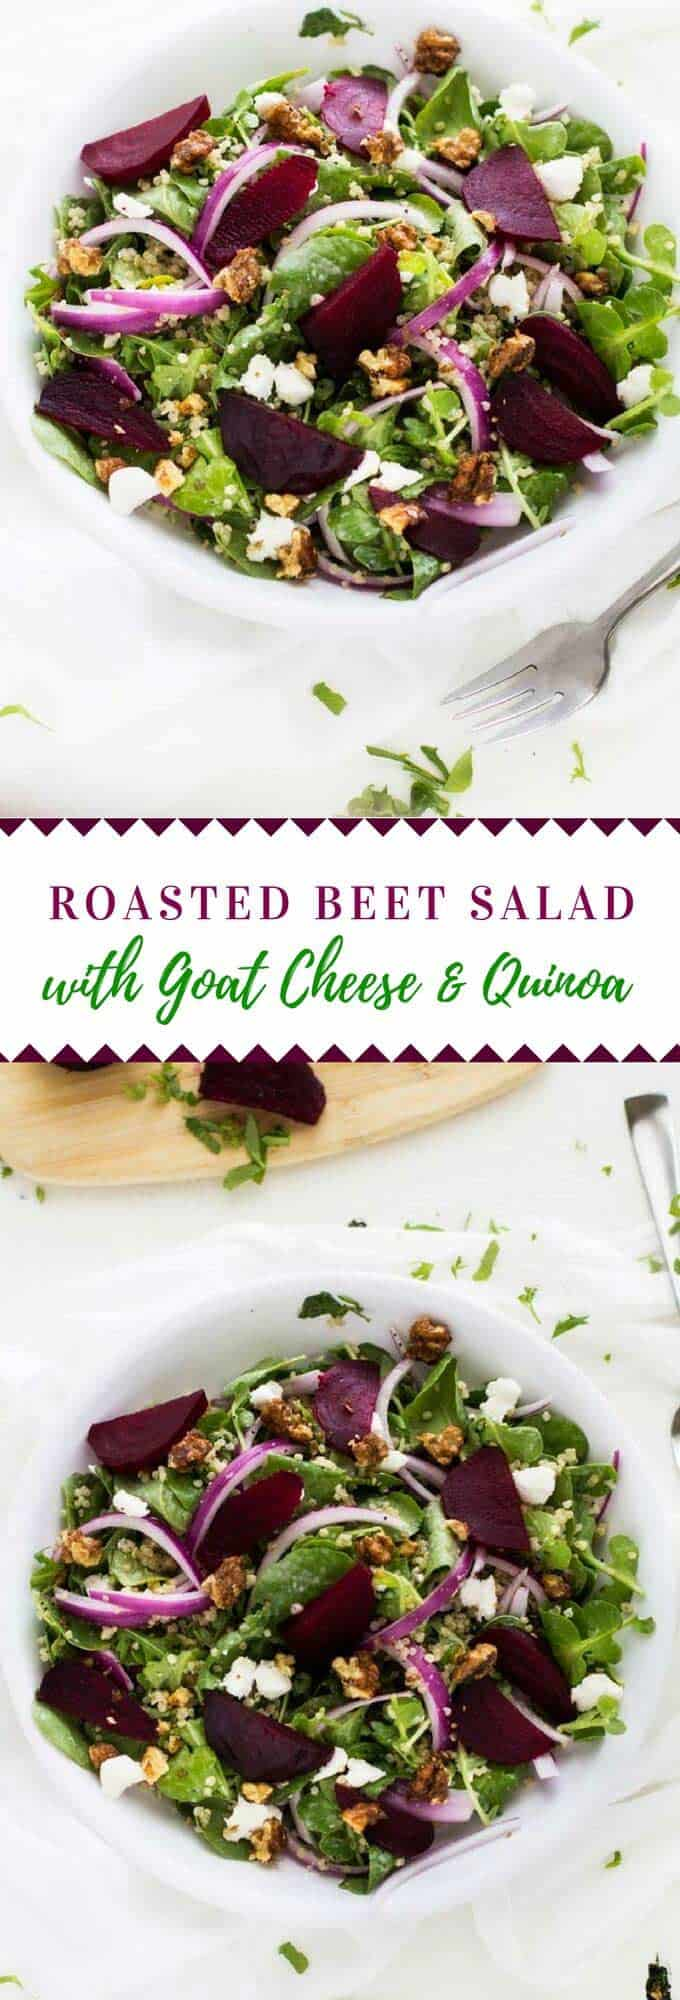 ThisRoasted Beet Salad with Goat Cheese & Quinoa has a delicious poppy seed dressing. It makes a fabulous vegetarian main course salad or side dish. #quinoa #salad #vegetarian